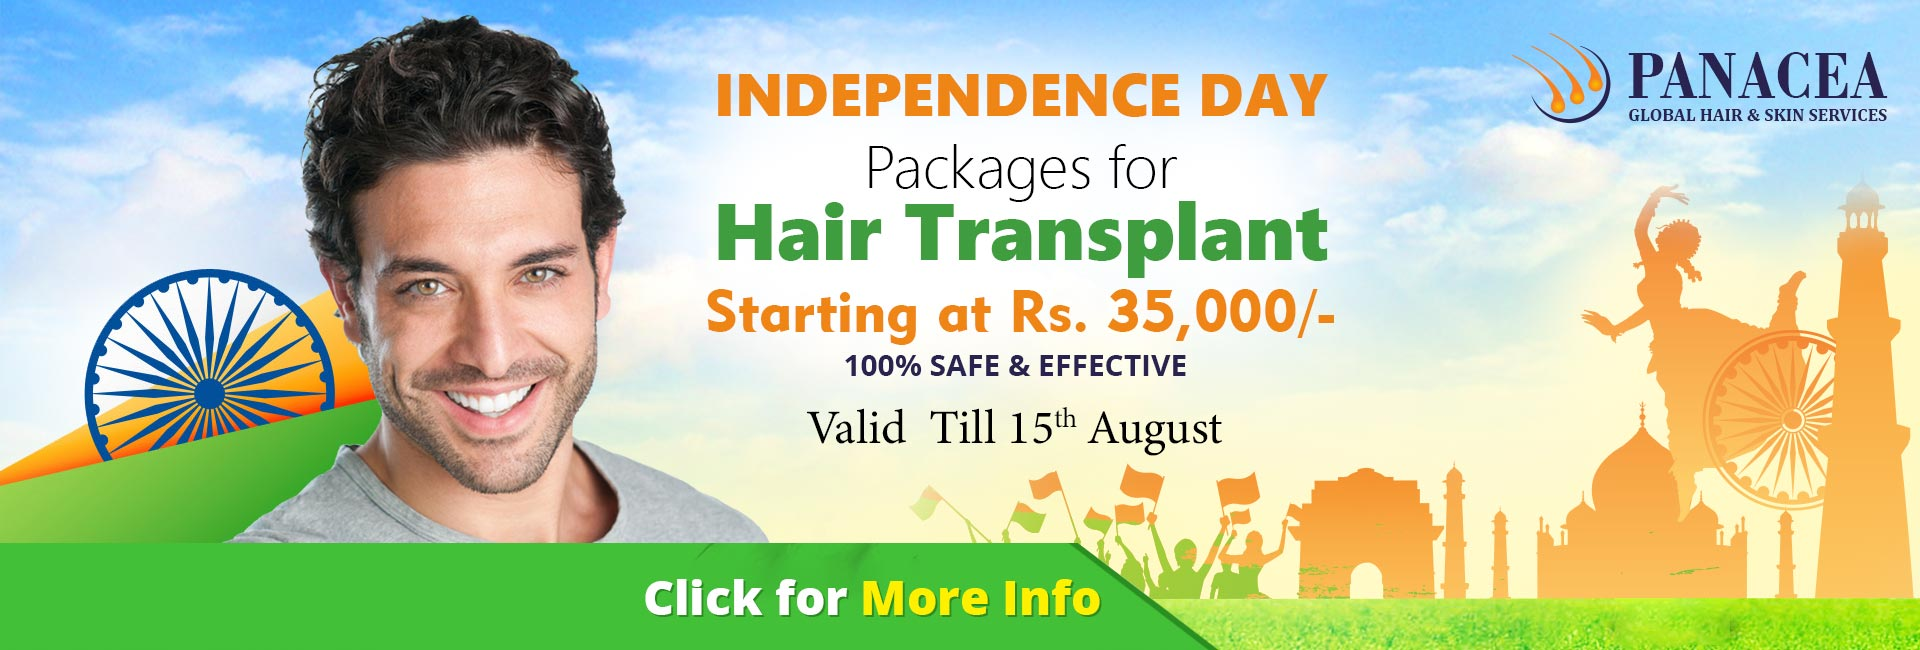 Hair Transplant Independemce Day offer - Panacea